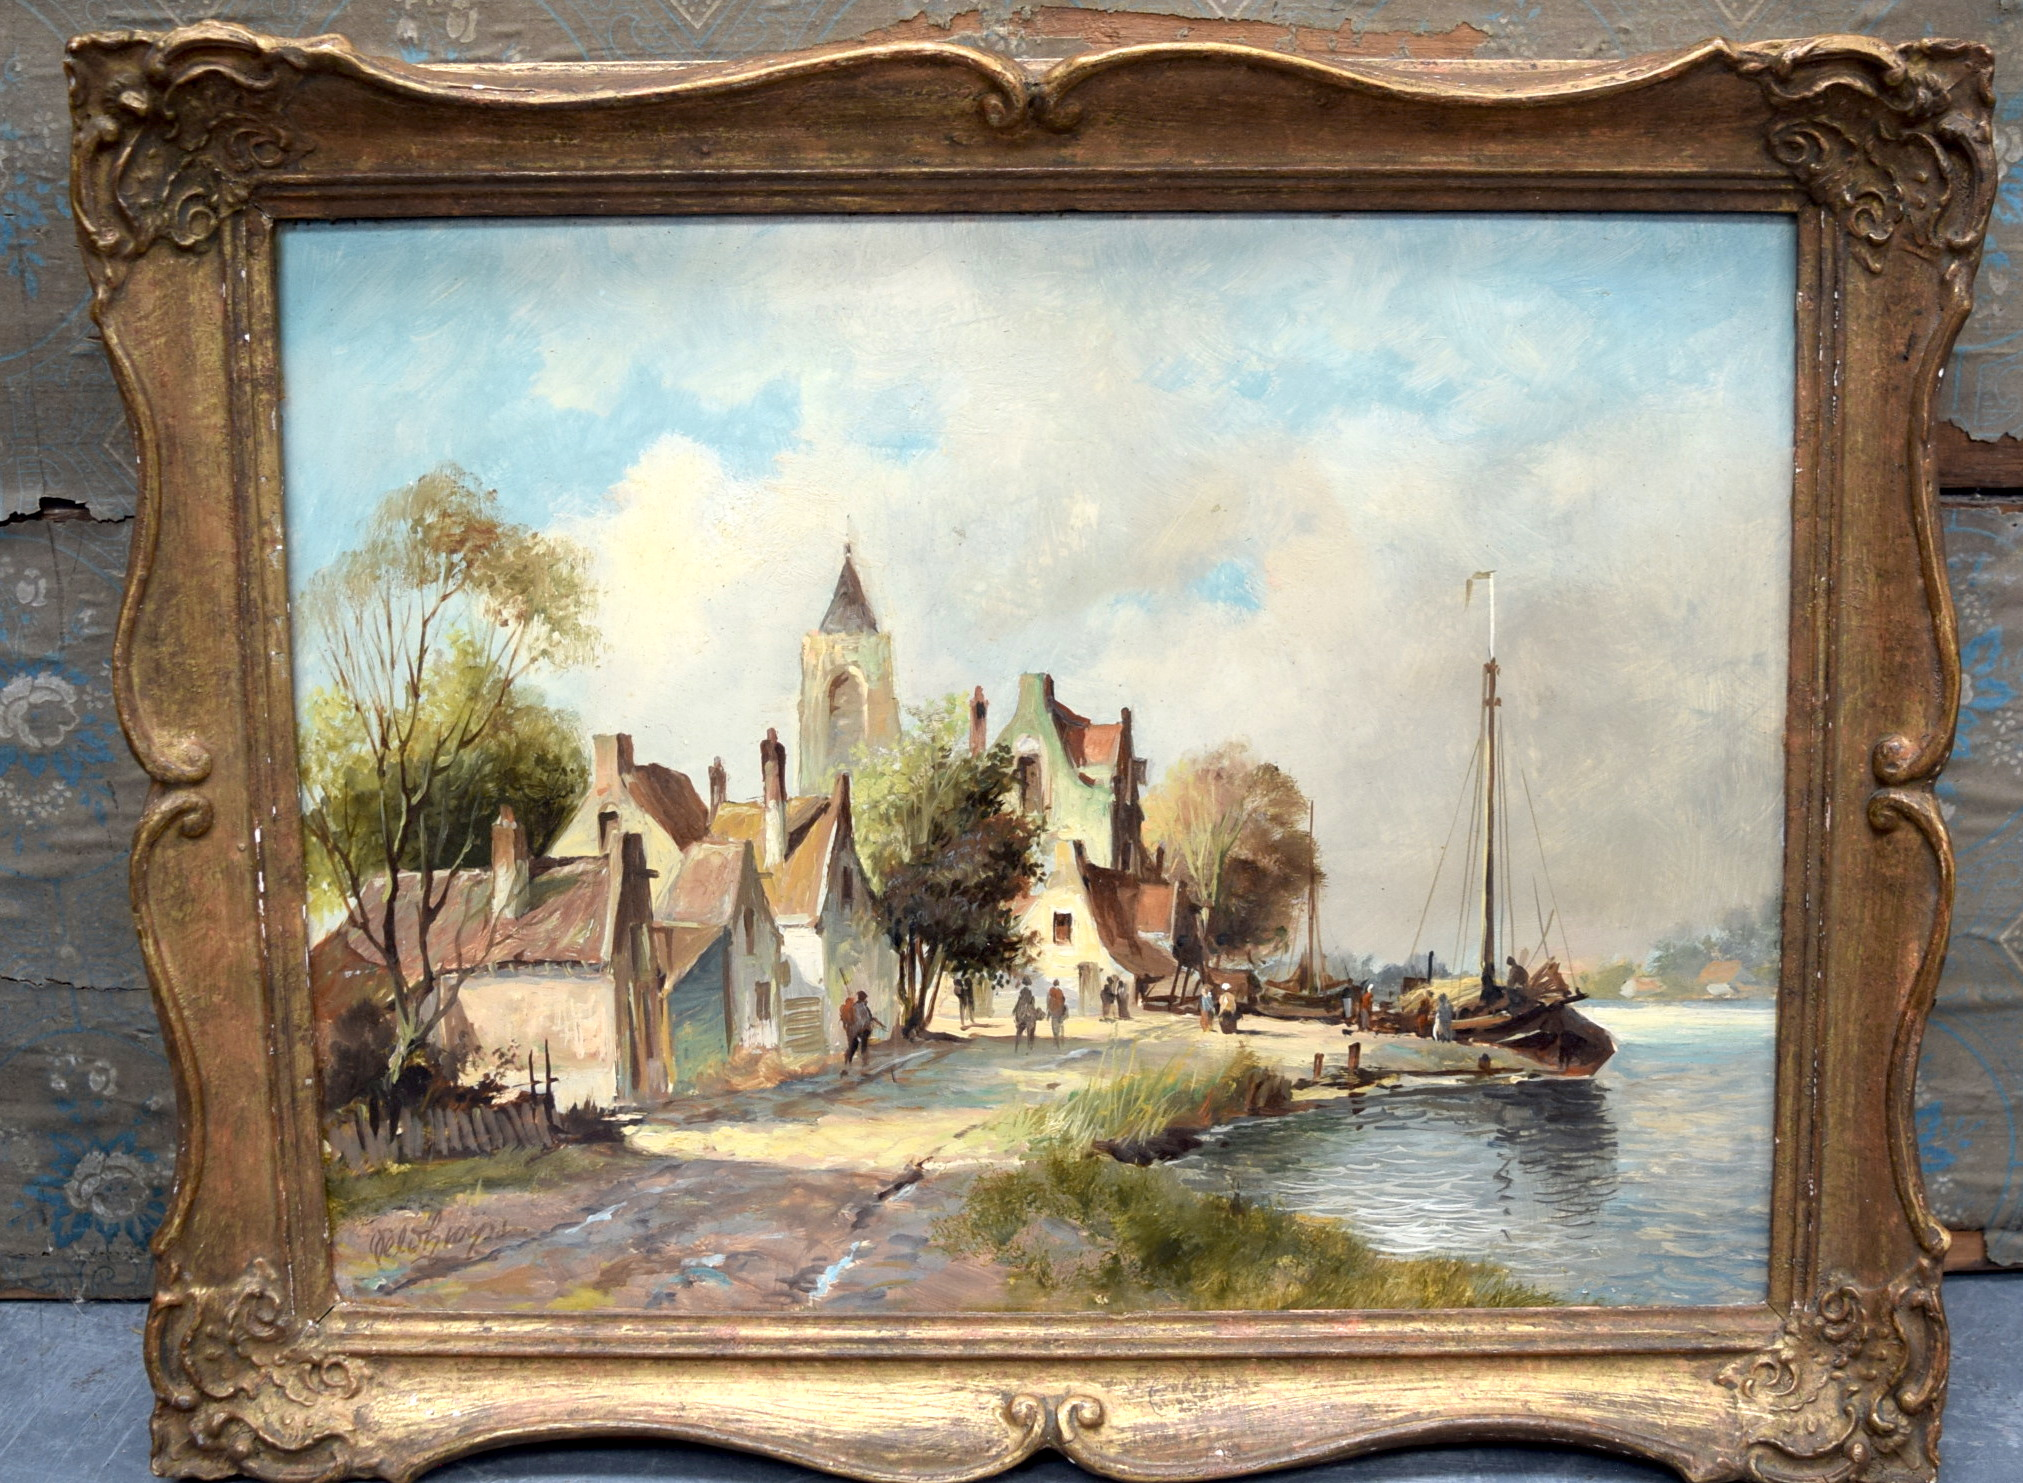 Lot 2244 - CONTINENTAL SCHOOL (19th/20th century) FRAMED OIL ON PANEL, indistinctly signed, figures in a river